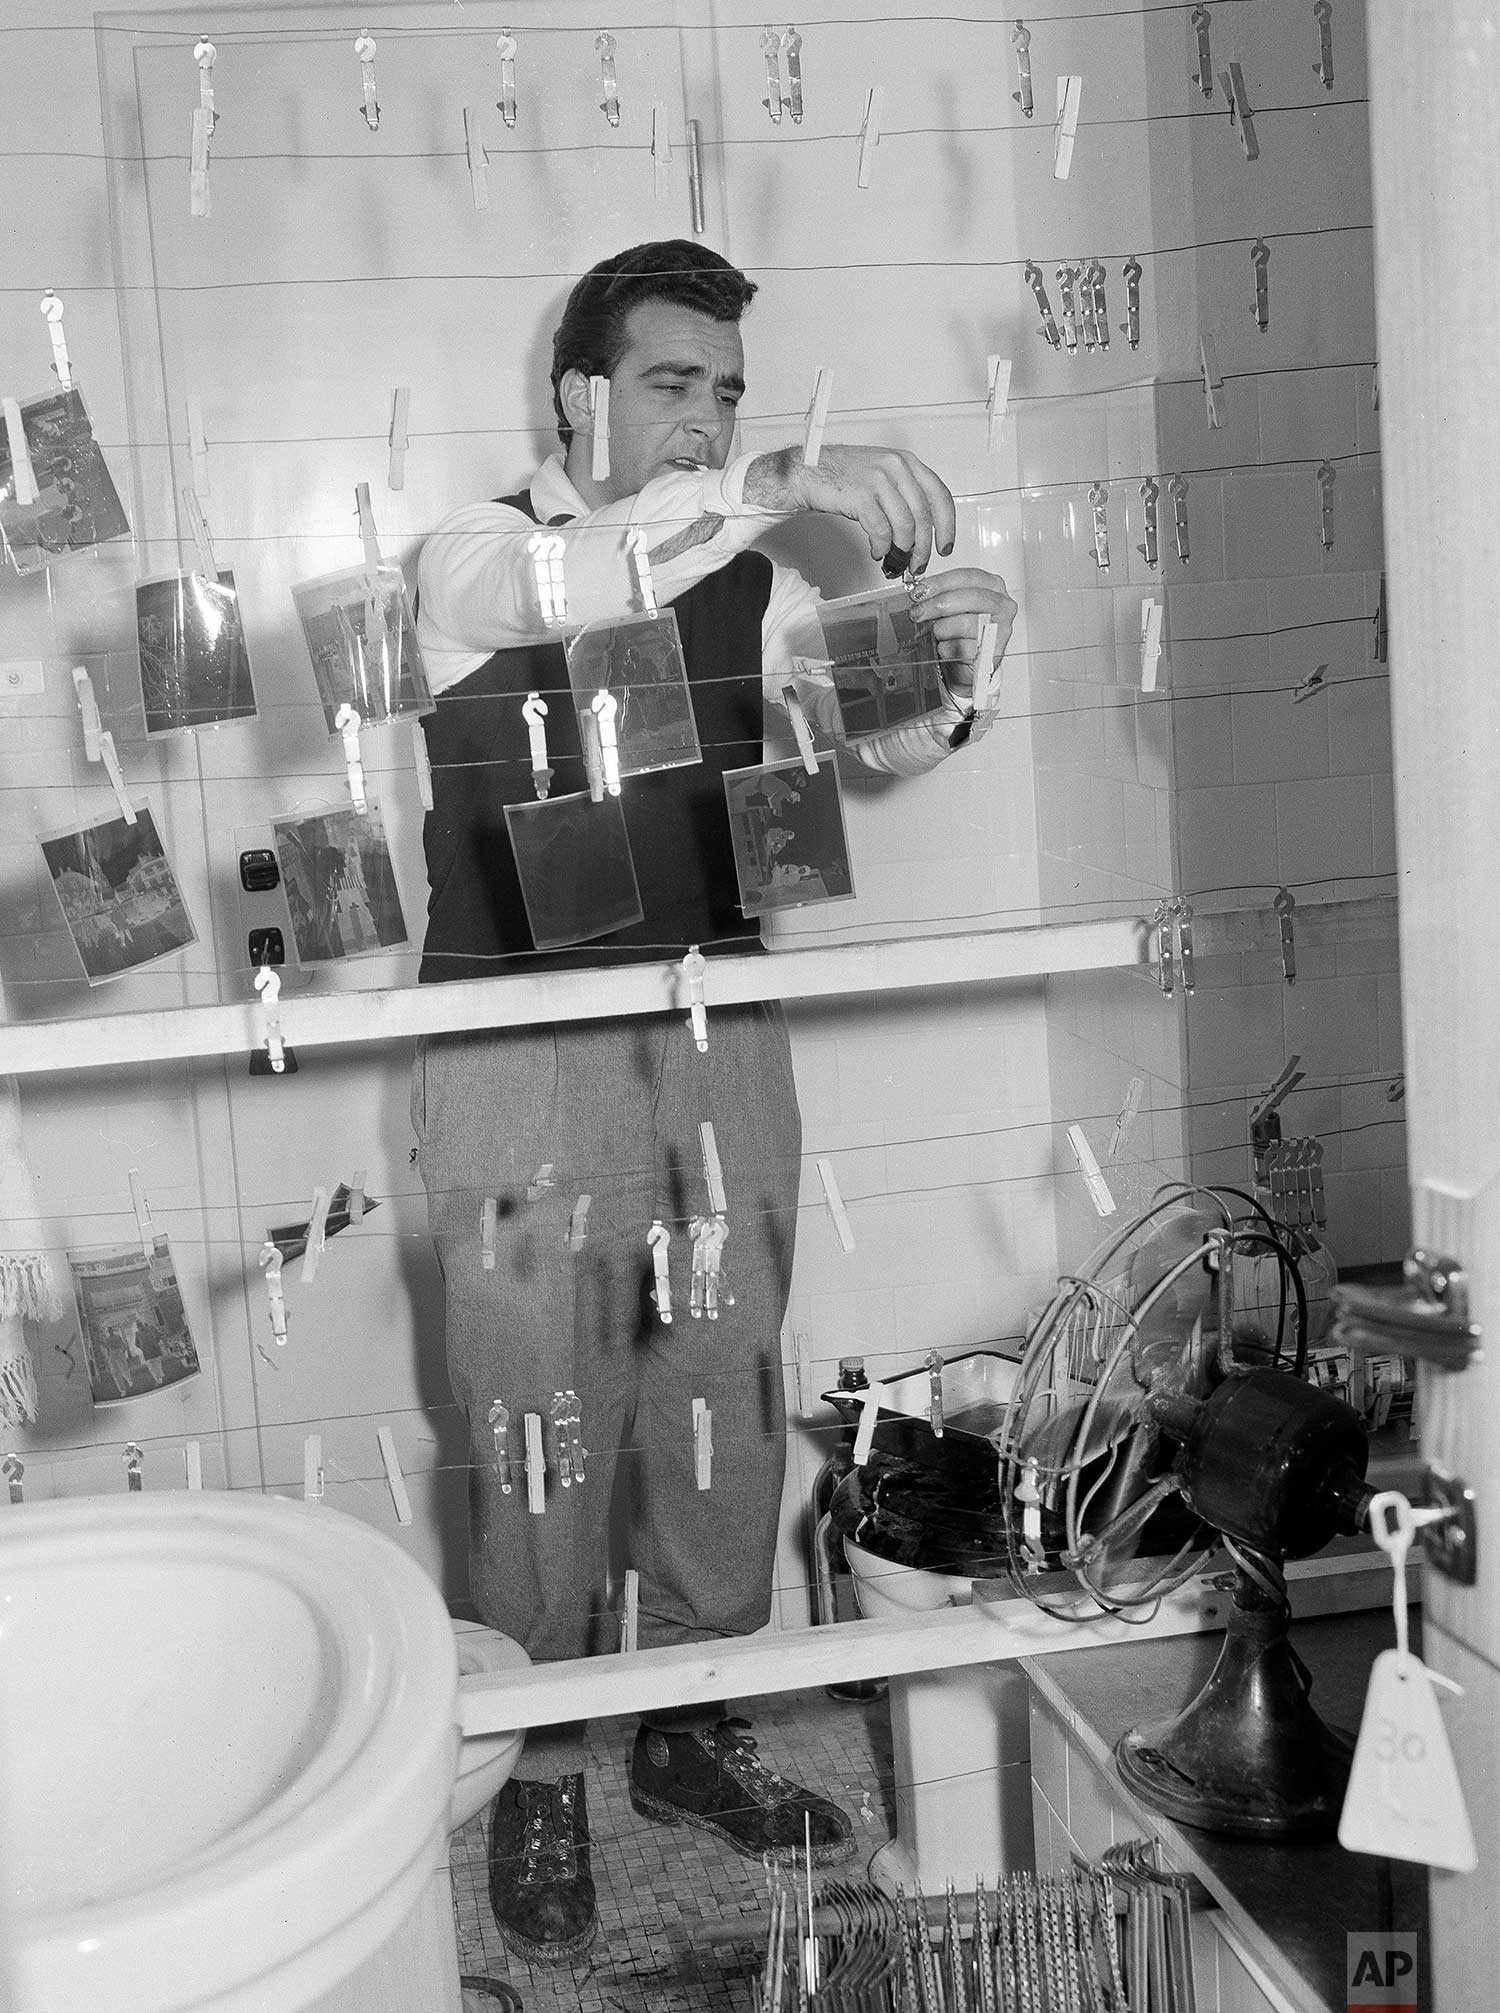 Rome darkroom staffer Carlo Pelliccia dries negatives in a bathroom where film for five AP photographers was being processed during the 1956 Winter Olympics in Cortina, Italy. (AP Photo/Walter Attenni)